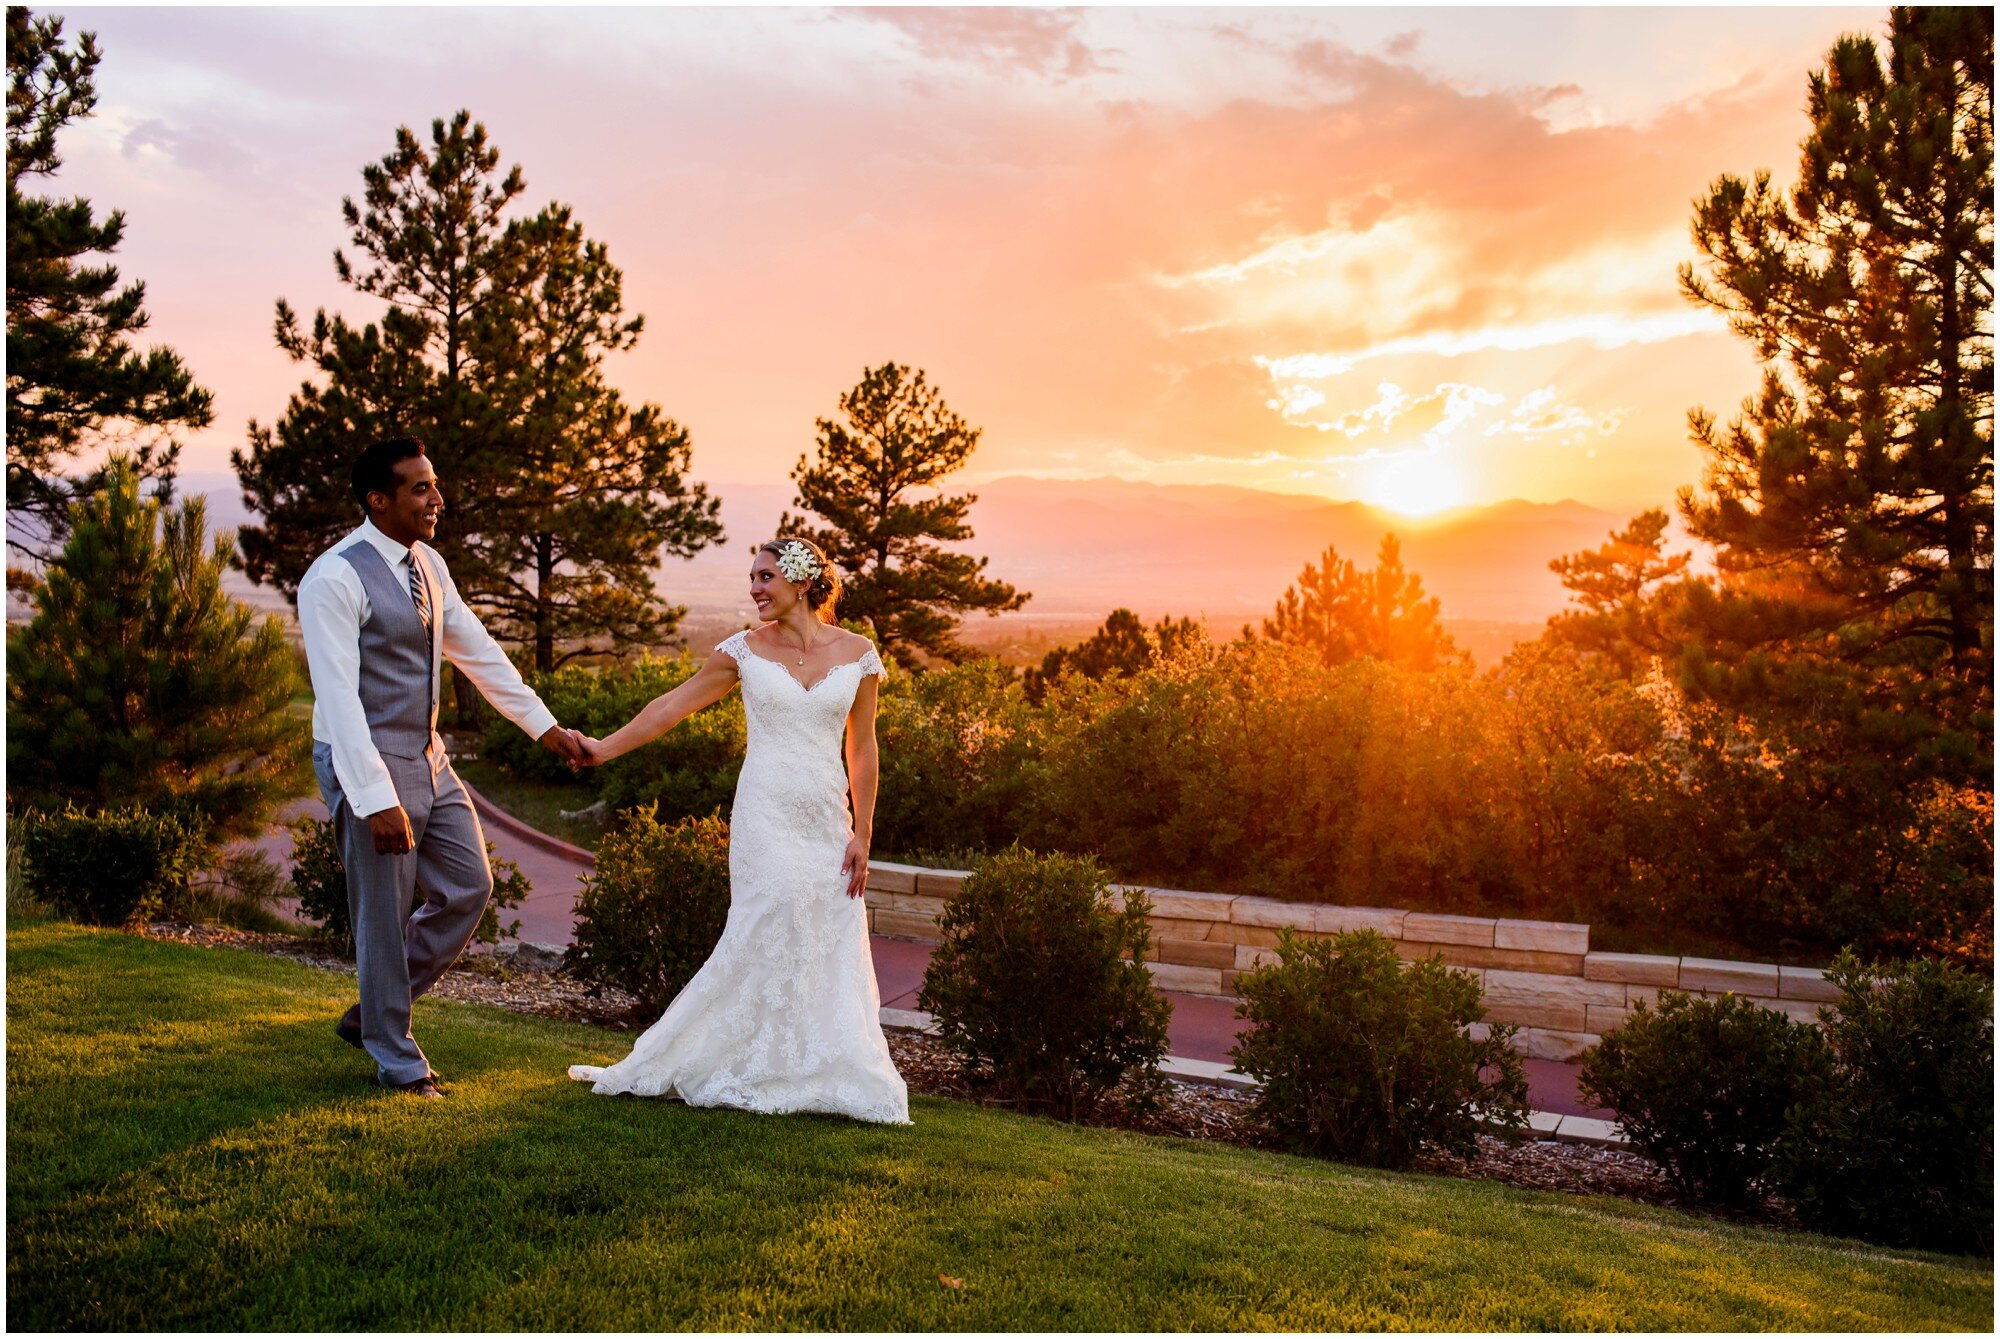 Sanctuary Golf Course wedding - bride and groom walking as sunset